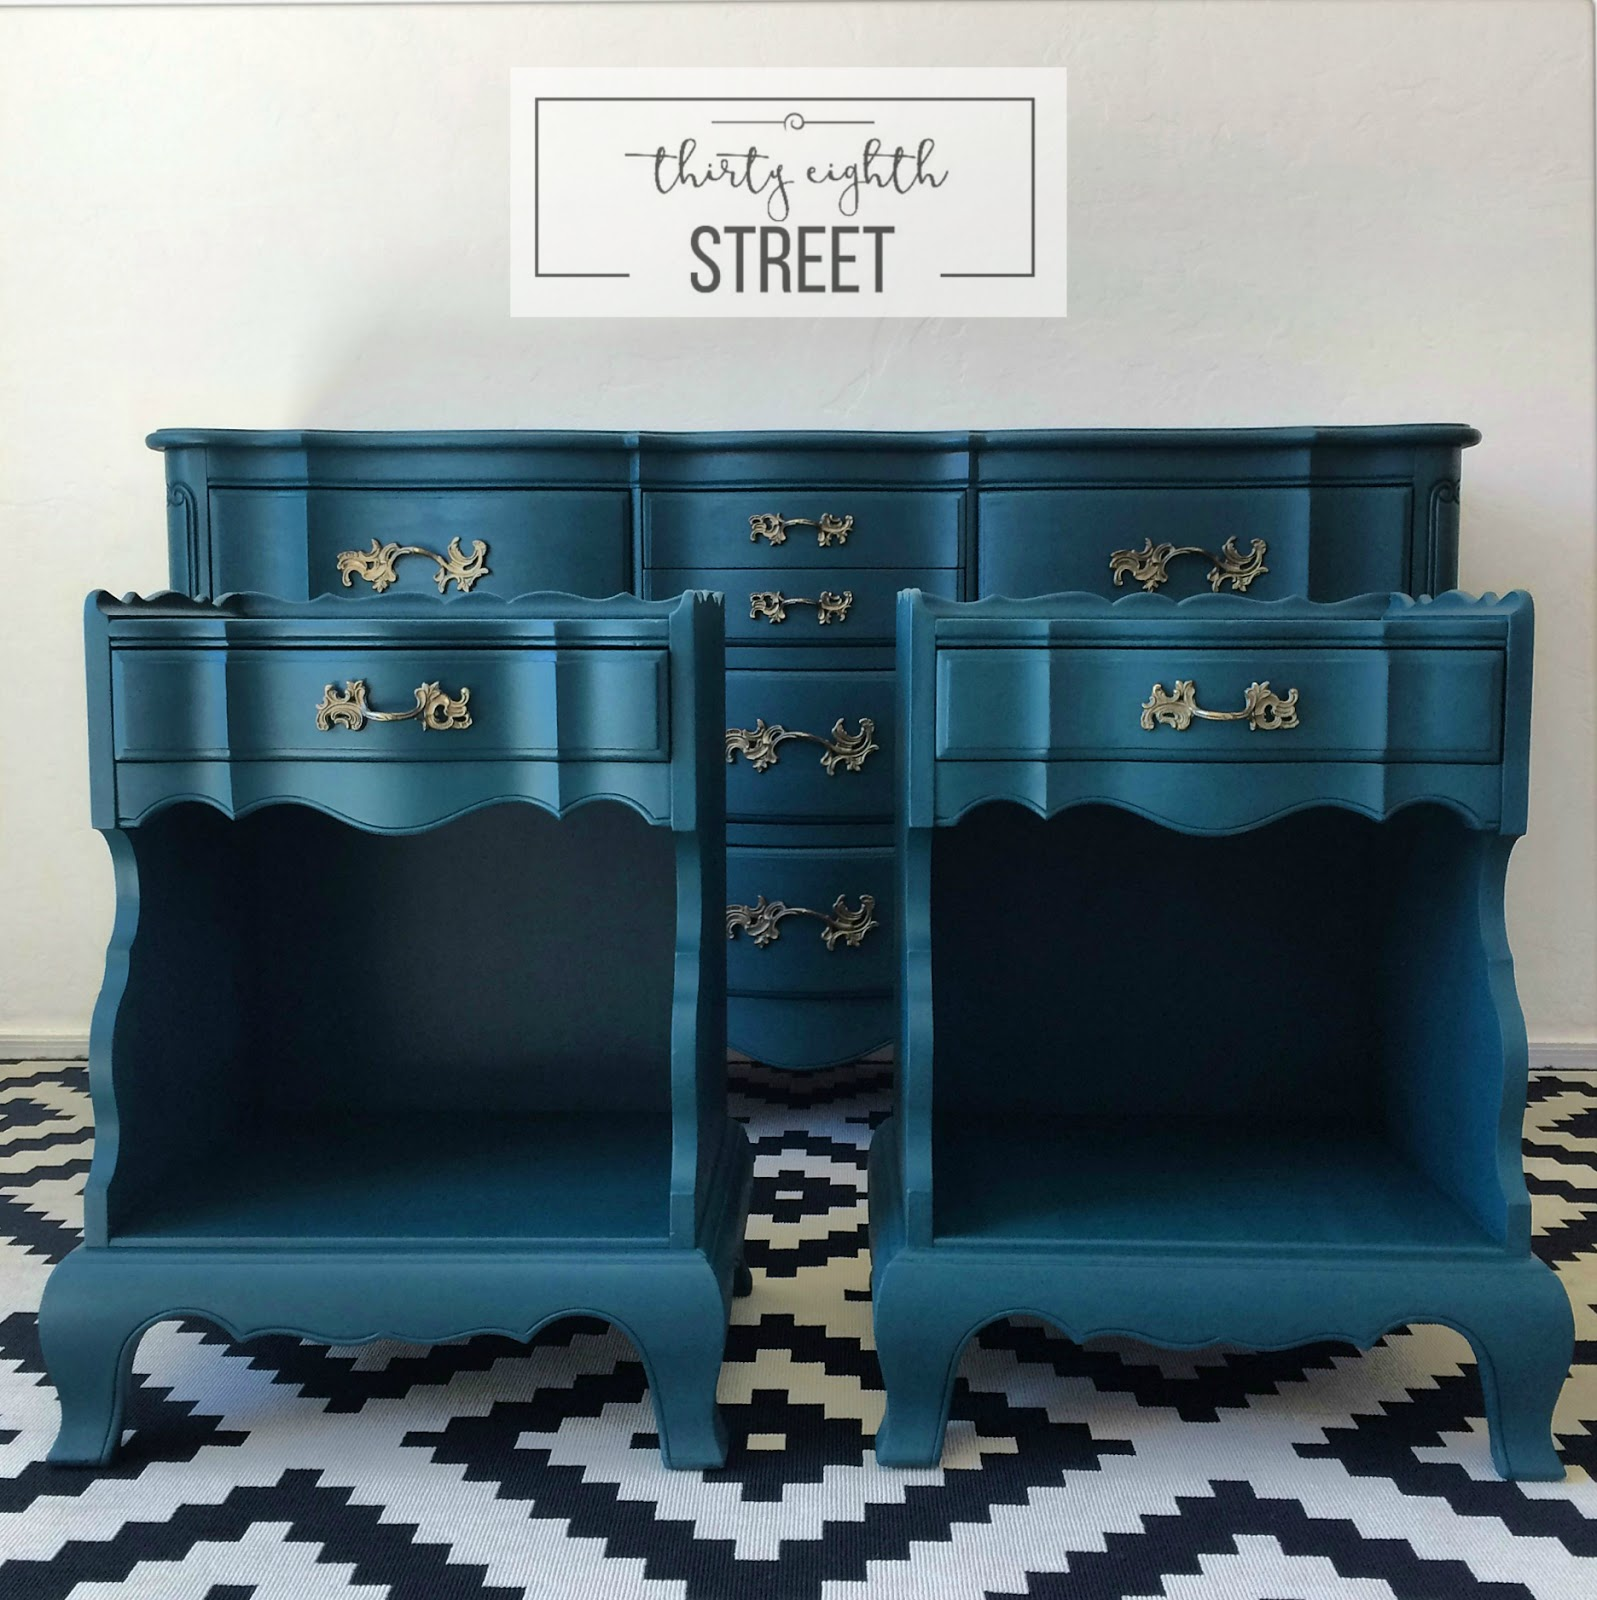 Provincial Bedroom Furniture Painted Peacock Blue Dresser Thirty Eighth Street